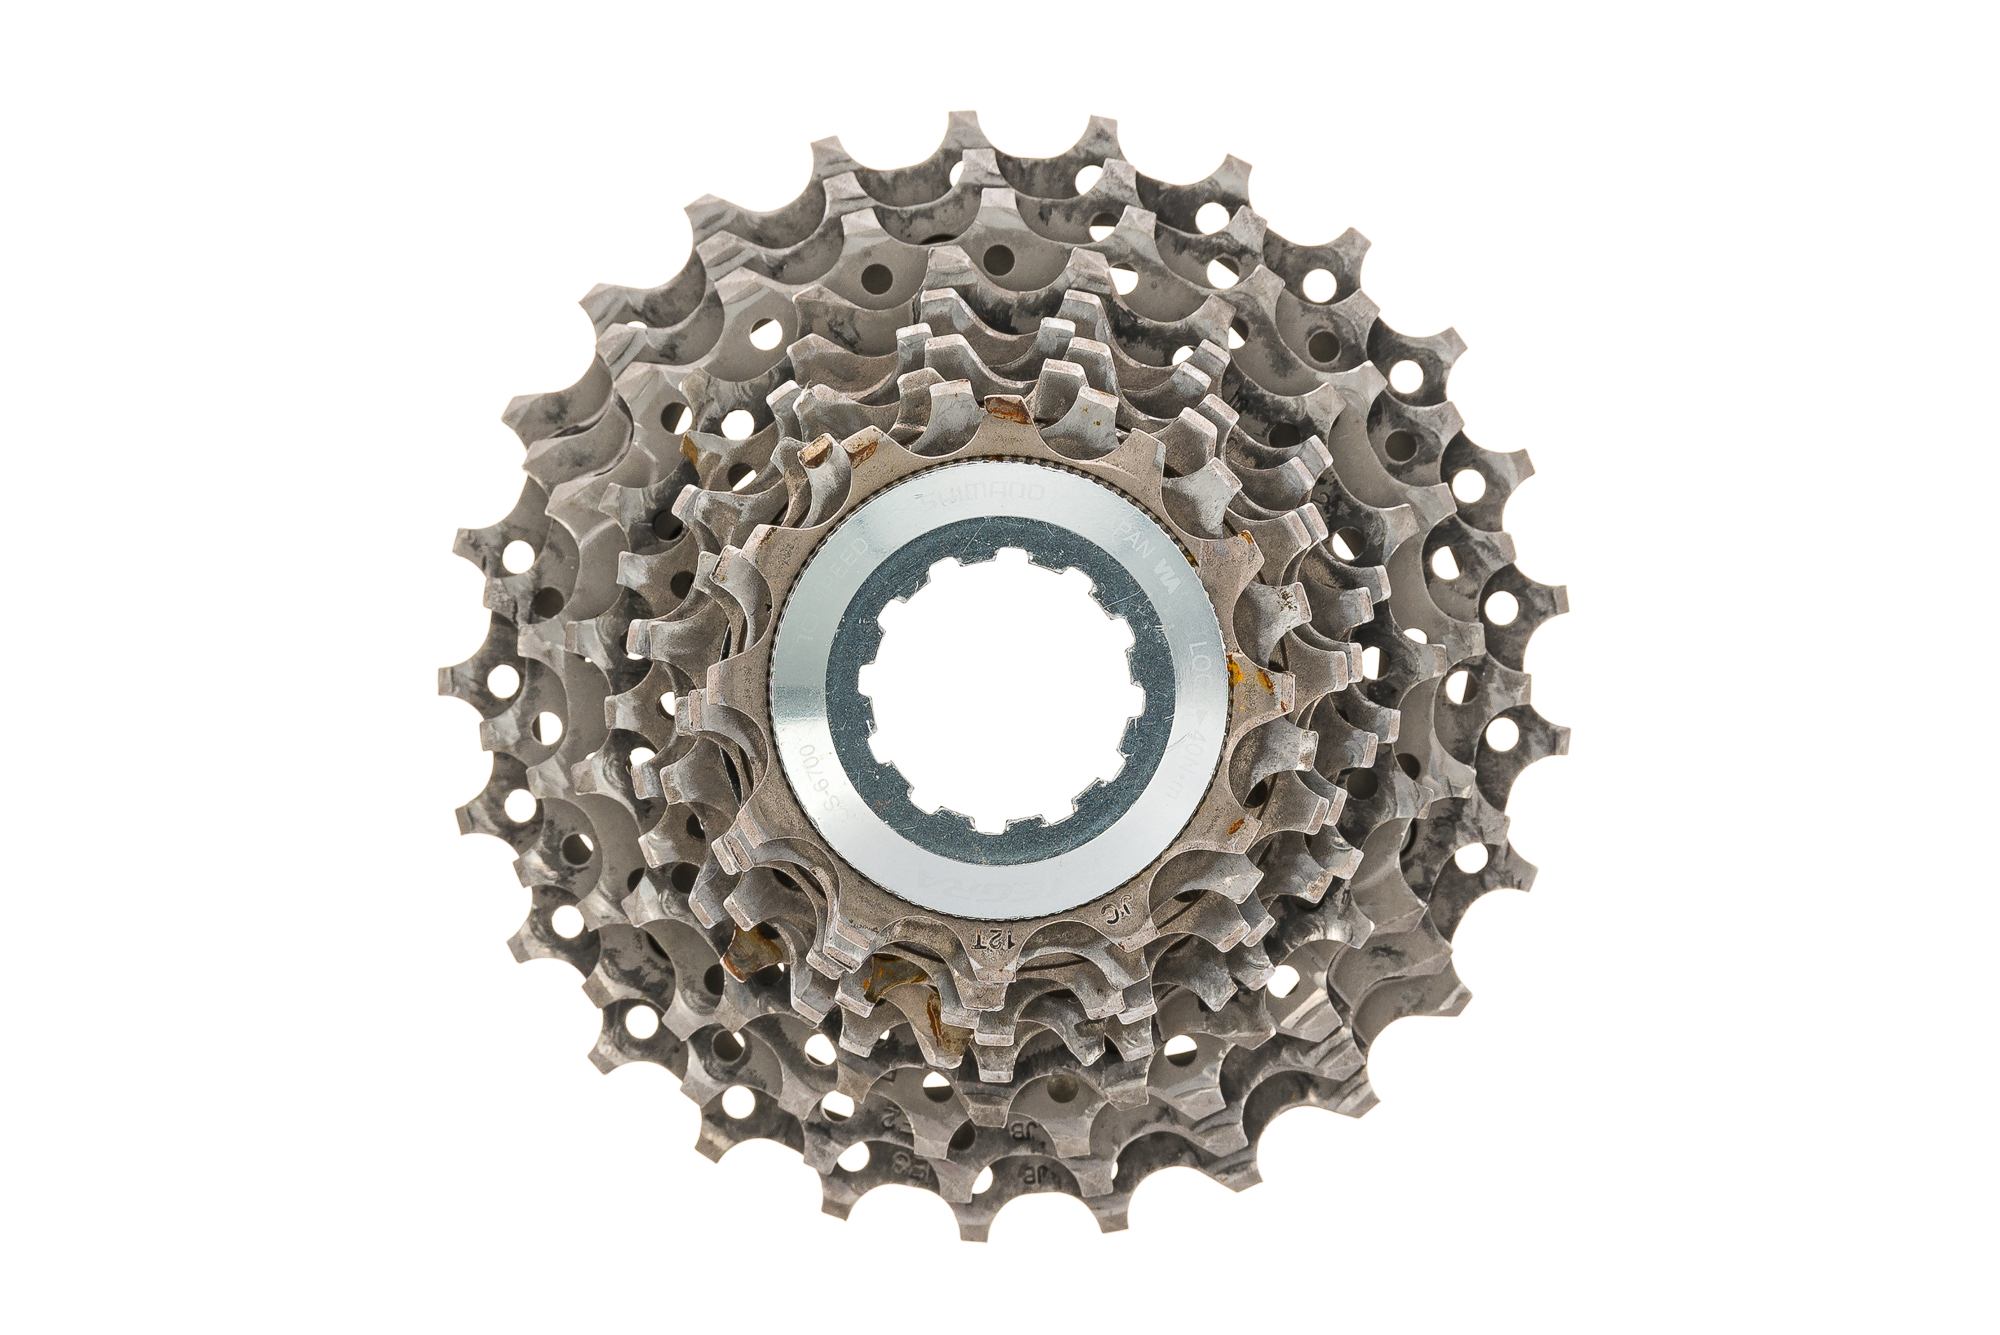 8ff7548c7a1 Details about Shimano Ultegra CS-6700 Cassette 10 Speed 12-25T - Good